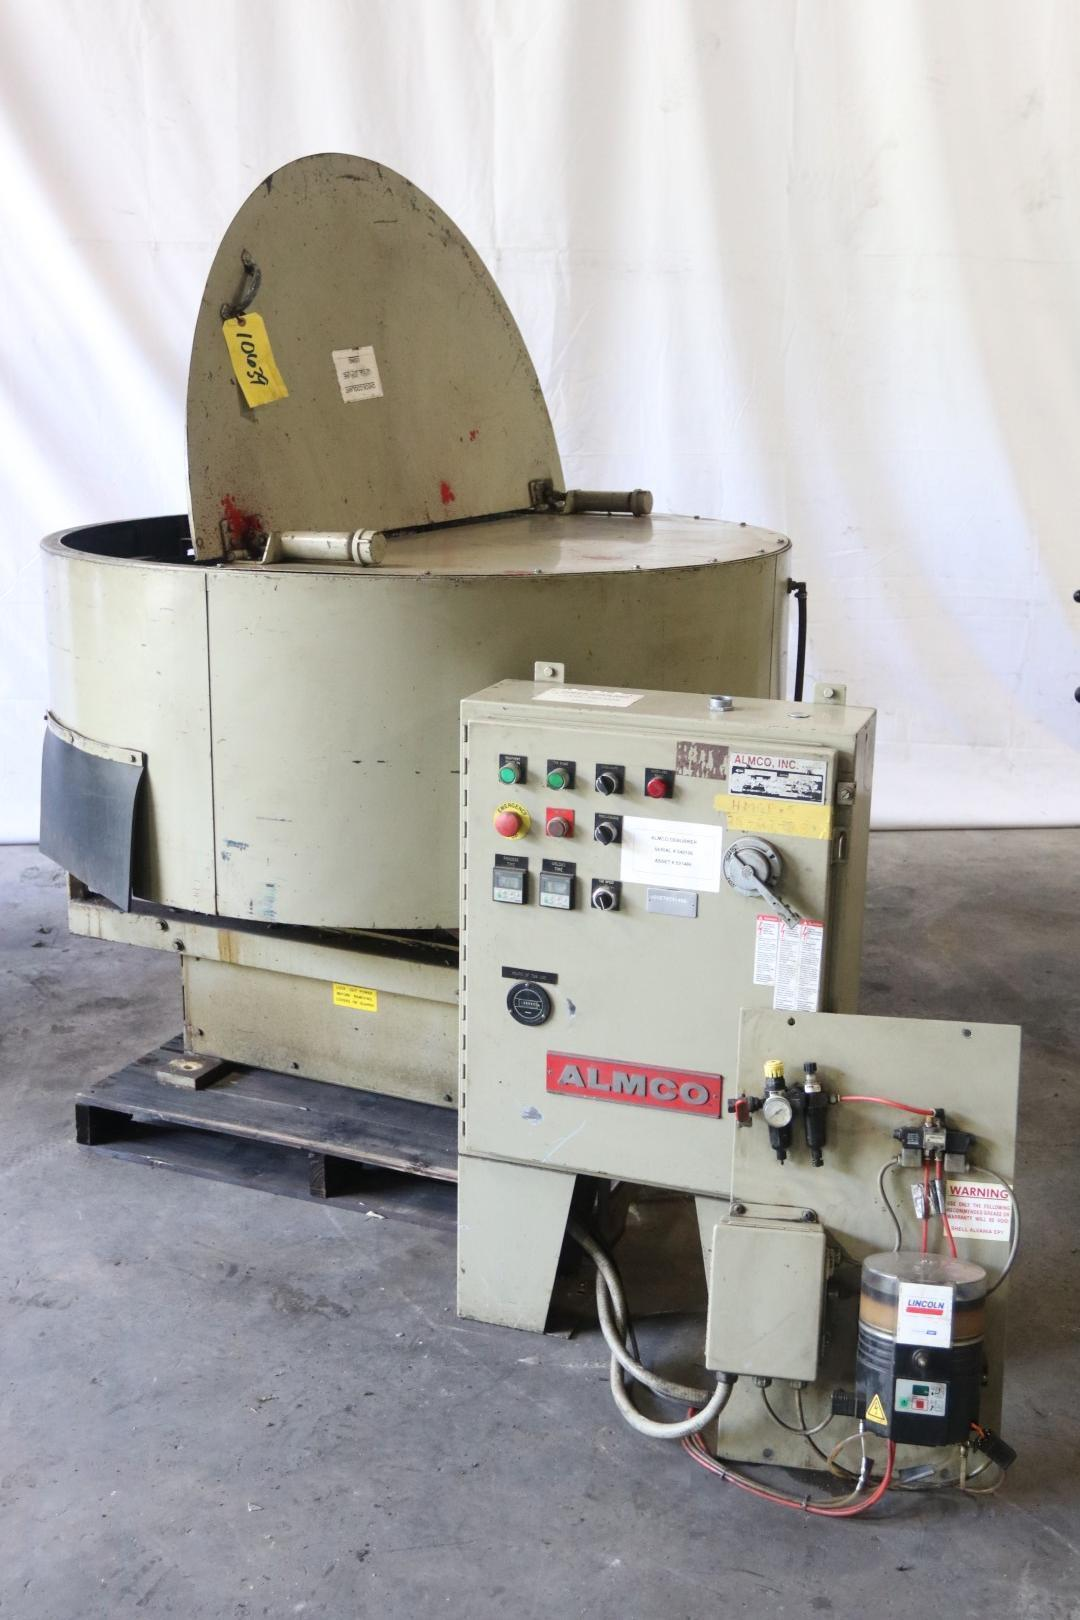 4.2 FT3 ALMCO MODEL #OR-5VLR ROTARY VIBRATORY FINISHER